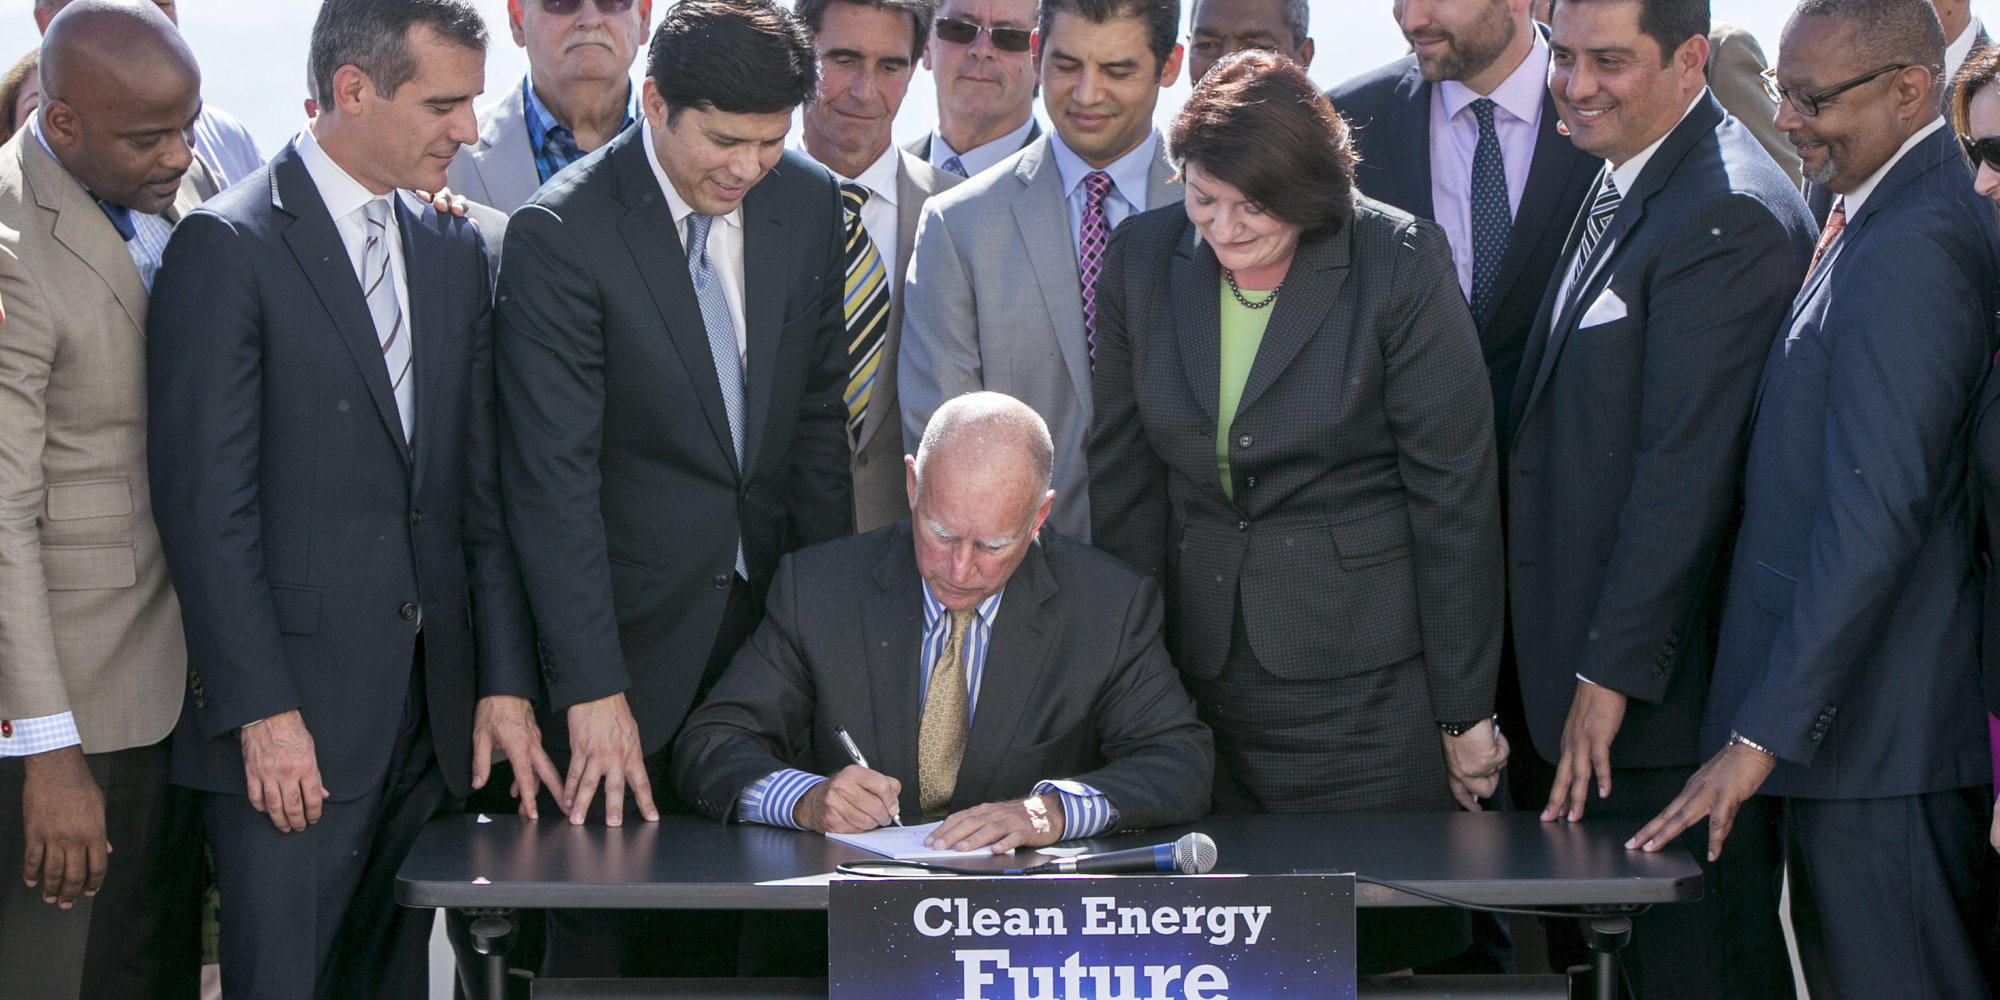 California Gov. Jerry Brown, sitting center, surrounded by government officials, signs landmark legislation, bill SB350 by Senate President pro Tempore Kevin De Leon, third from left, to combat climate change by increasing the state's renewable electricity use to 50 percent and doubling energy efficiency in existing buildings by 2030 at a ceremony at the Griffith Observatory in Los Angeles on Wednesday, Oct. 7, 2015. (AP Photo/Damian Dovarganes)